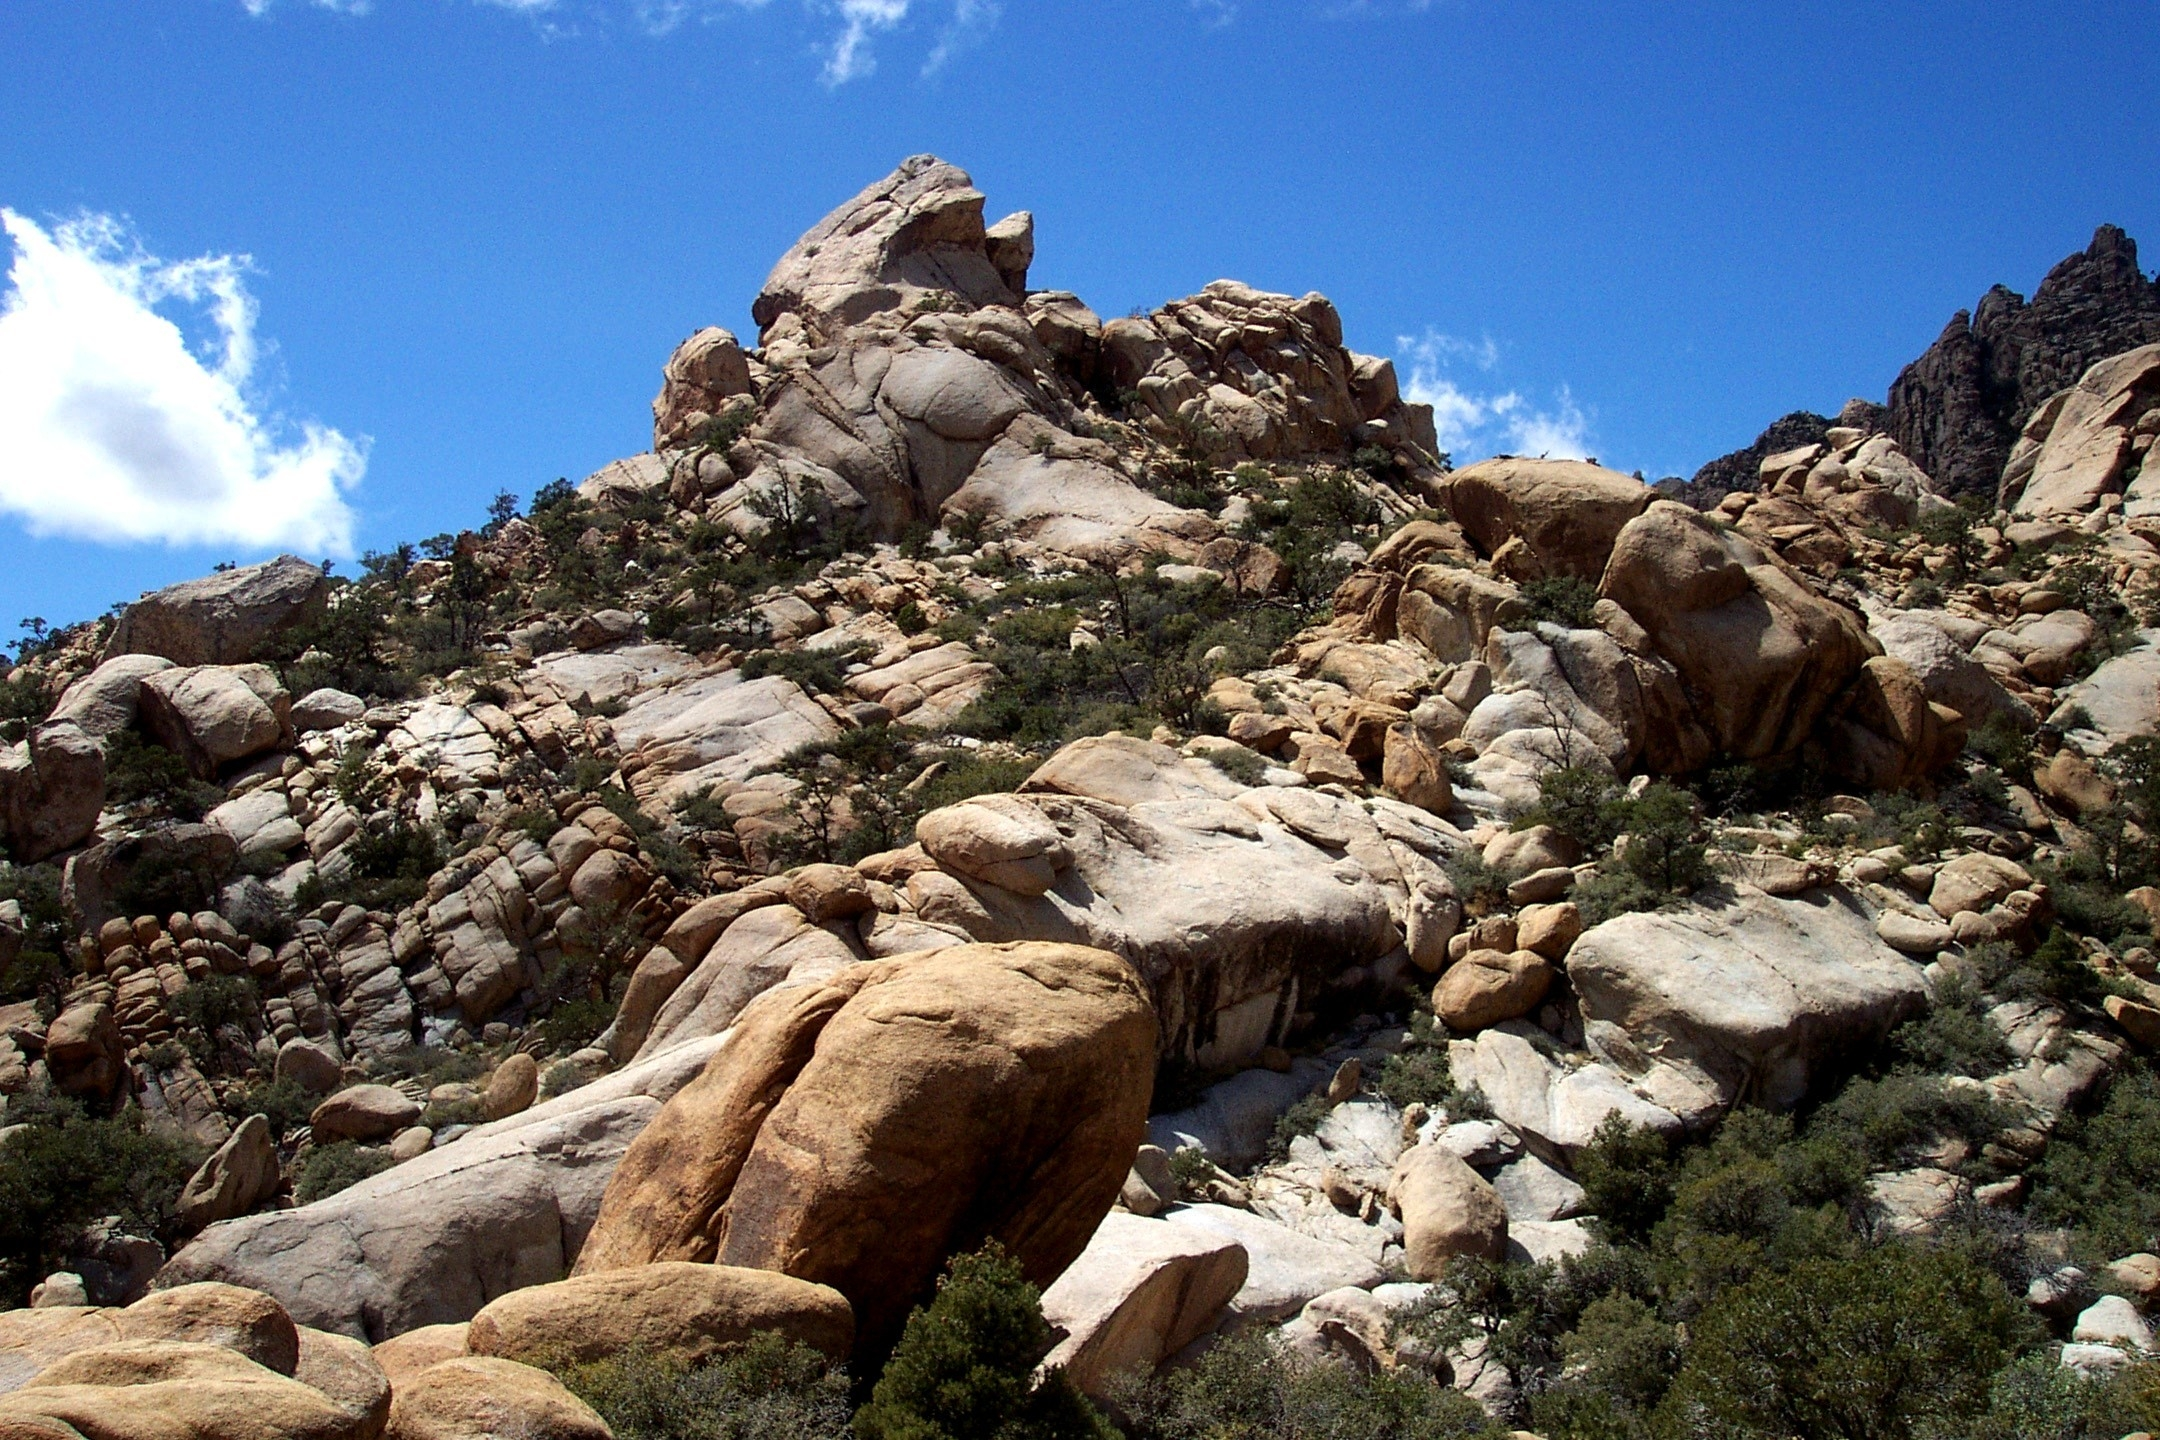 Caruther's Canyon in Mojave National Preserve